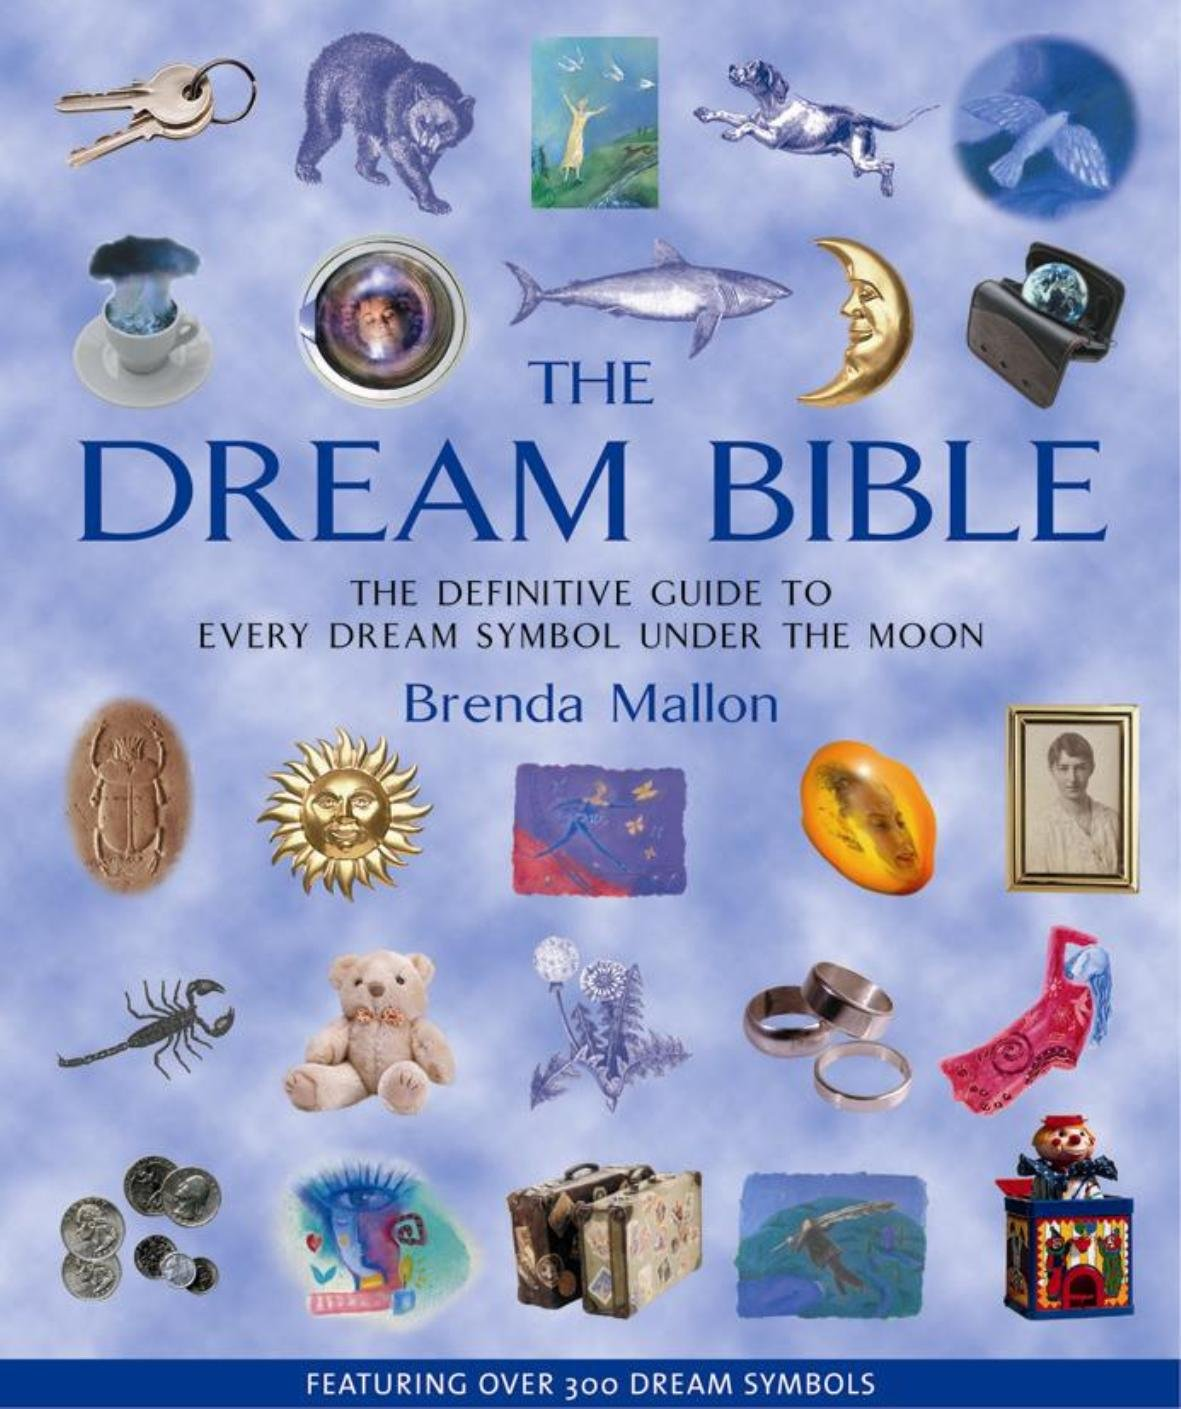 The Dream Bible The Definitive Guide To Every Dream Symbol Under